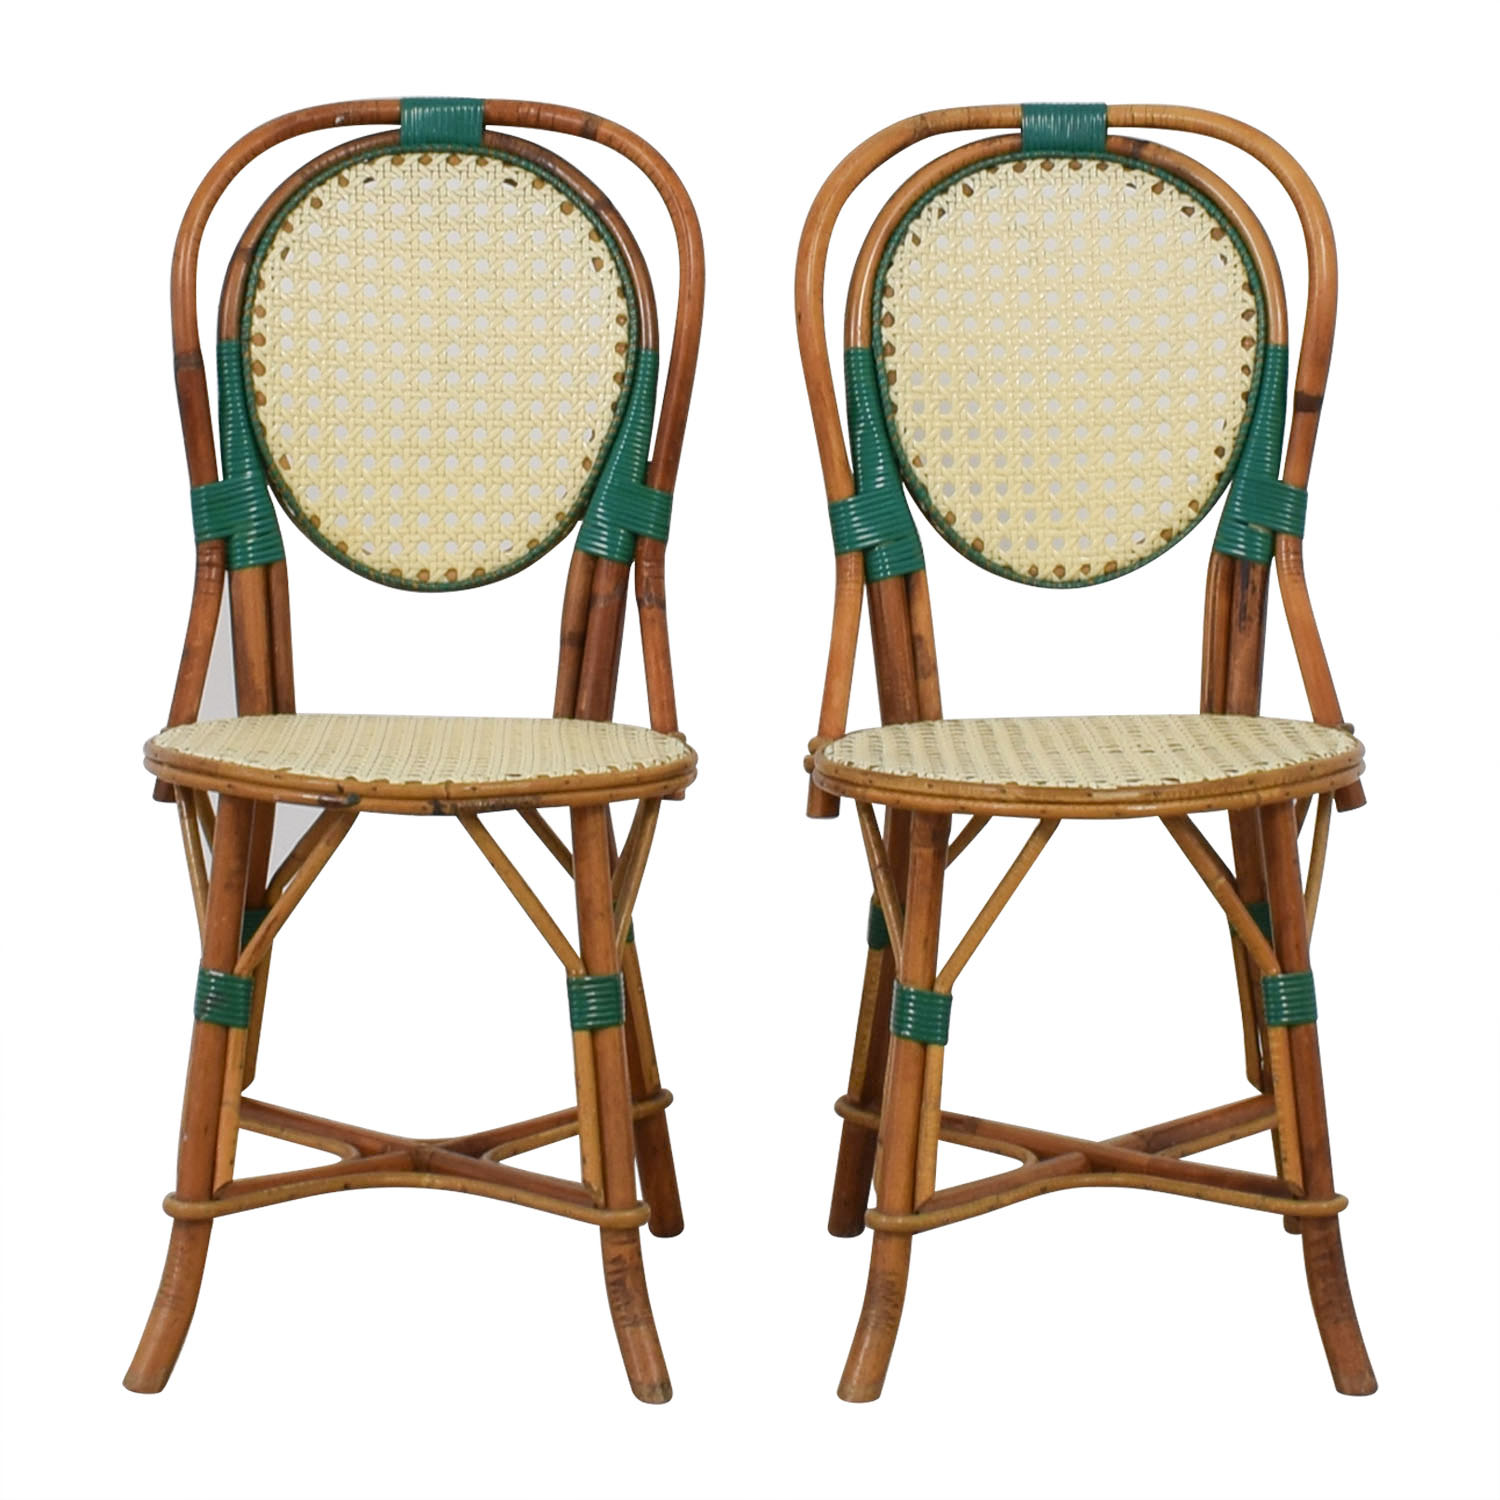 Genuine Vintage Cane French Bistro Chairs second hand